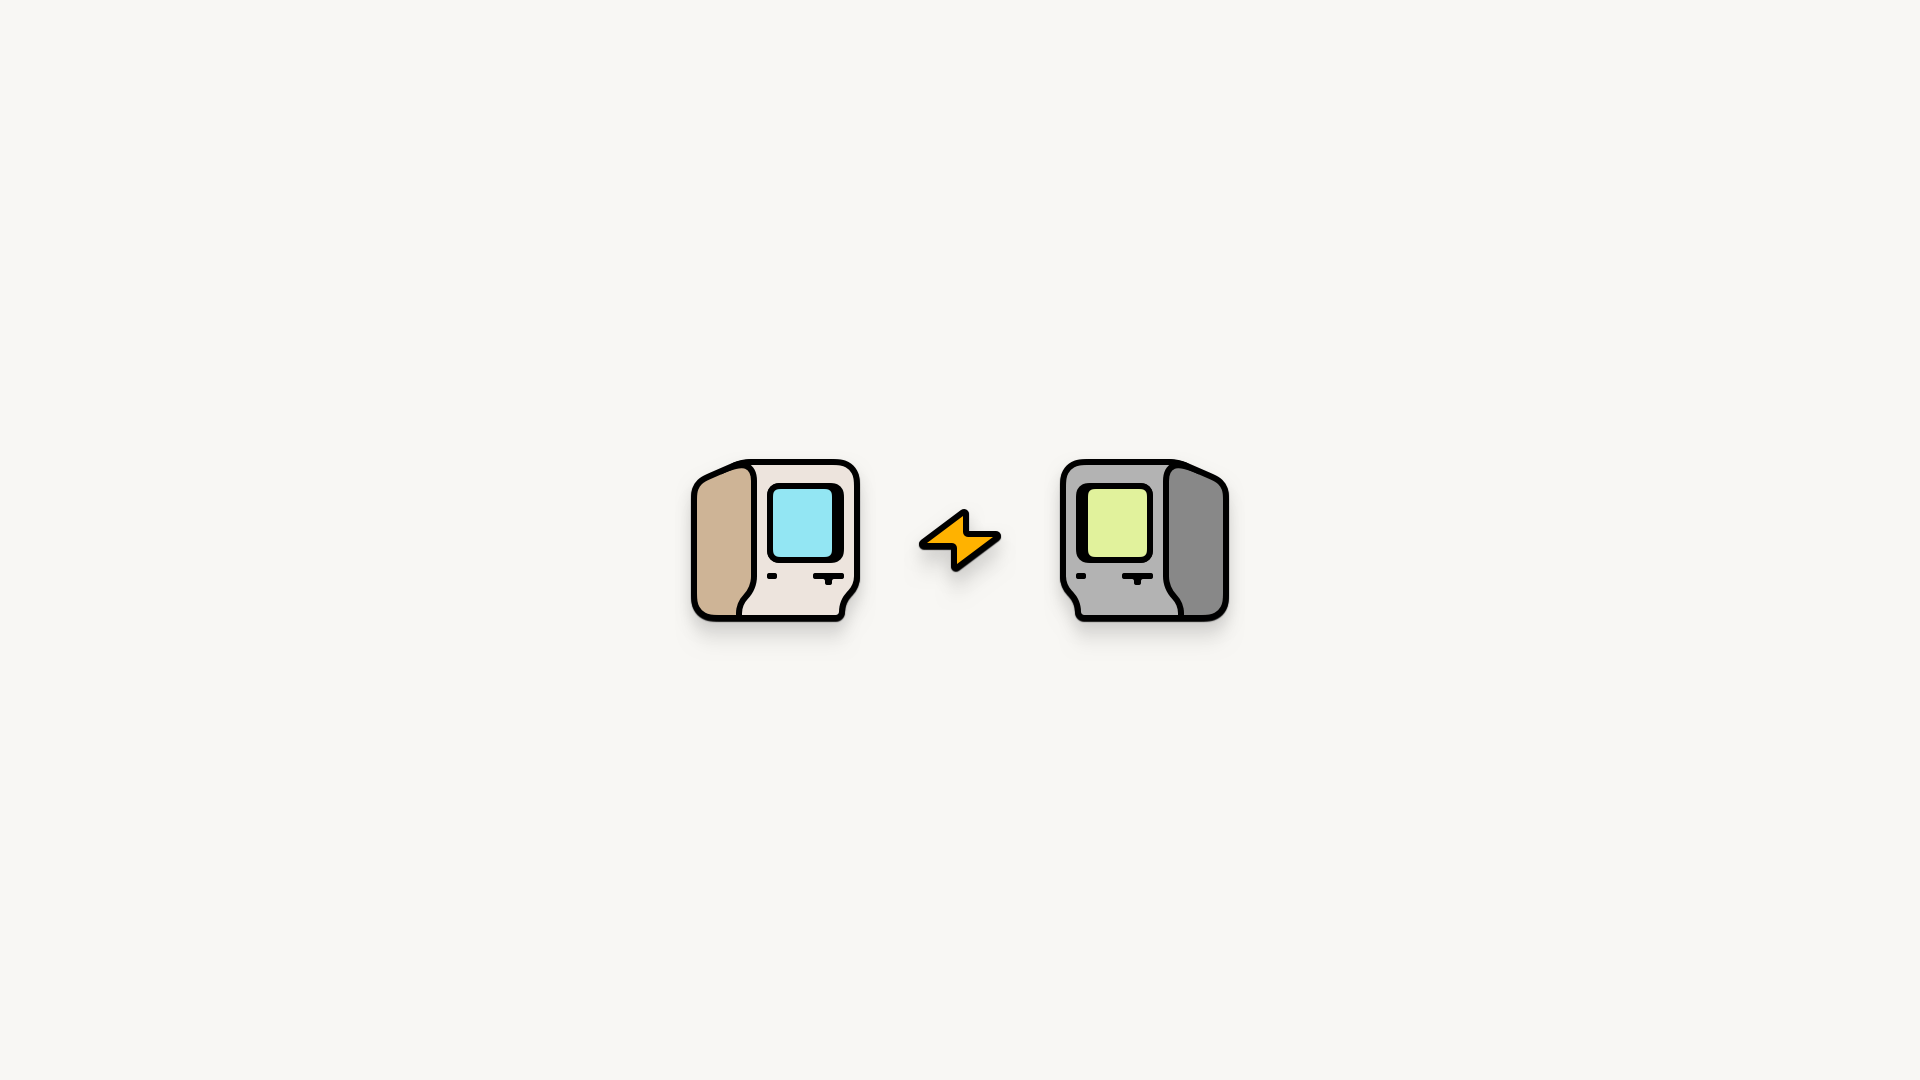 An illustration of two old-school Macintosh computers facing each other with a lightning bold between them, all in the style of enamel pins on a white background